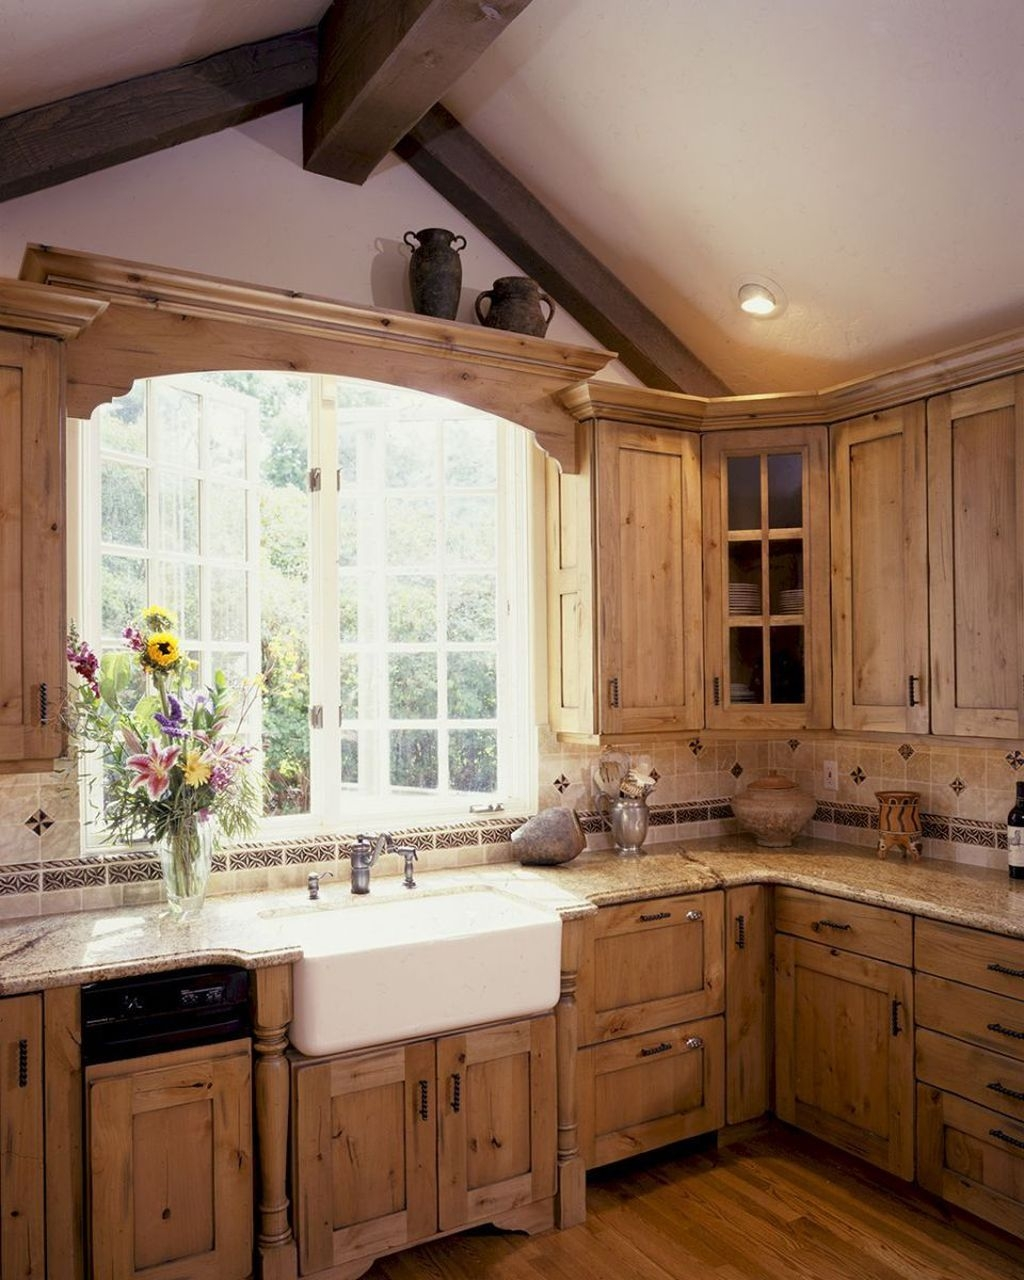 Gorgeus Farmhouse Kitchen Sink Design Ideas 06